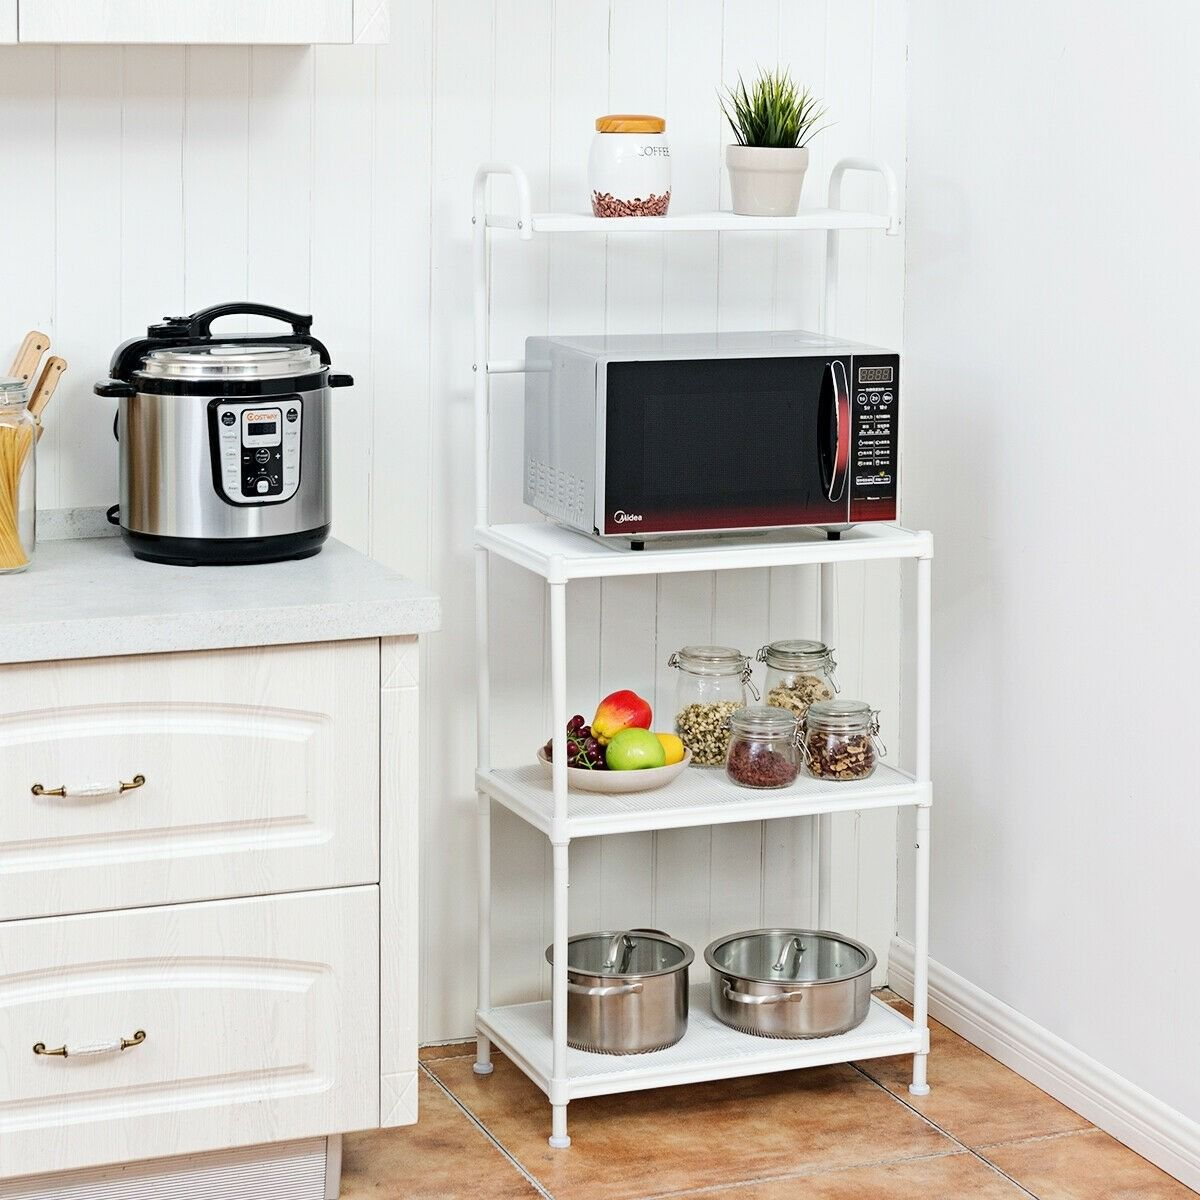 4 Tier Kitchen Storage Baker Microwave Oven Rack Shelves With